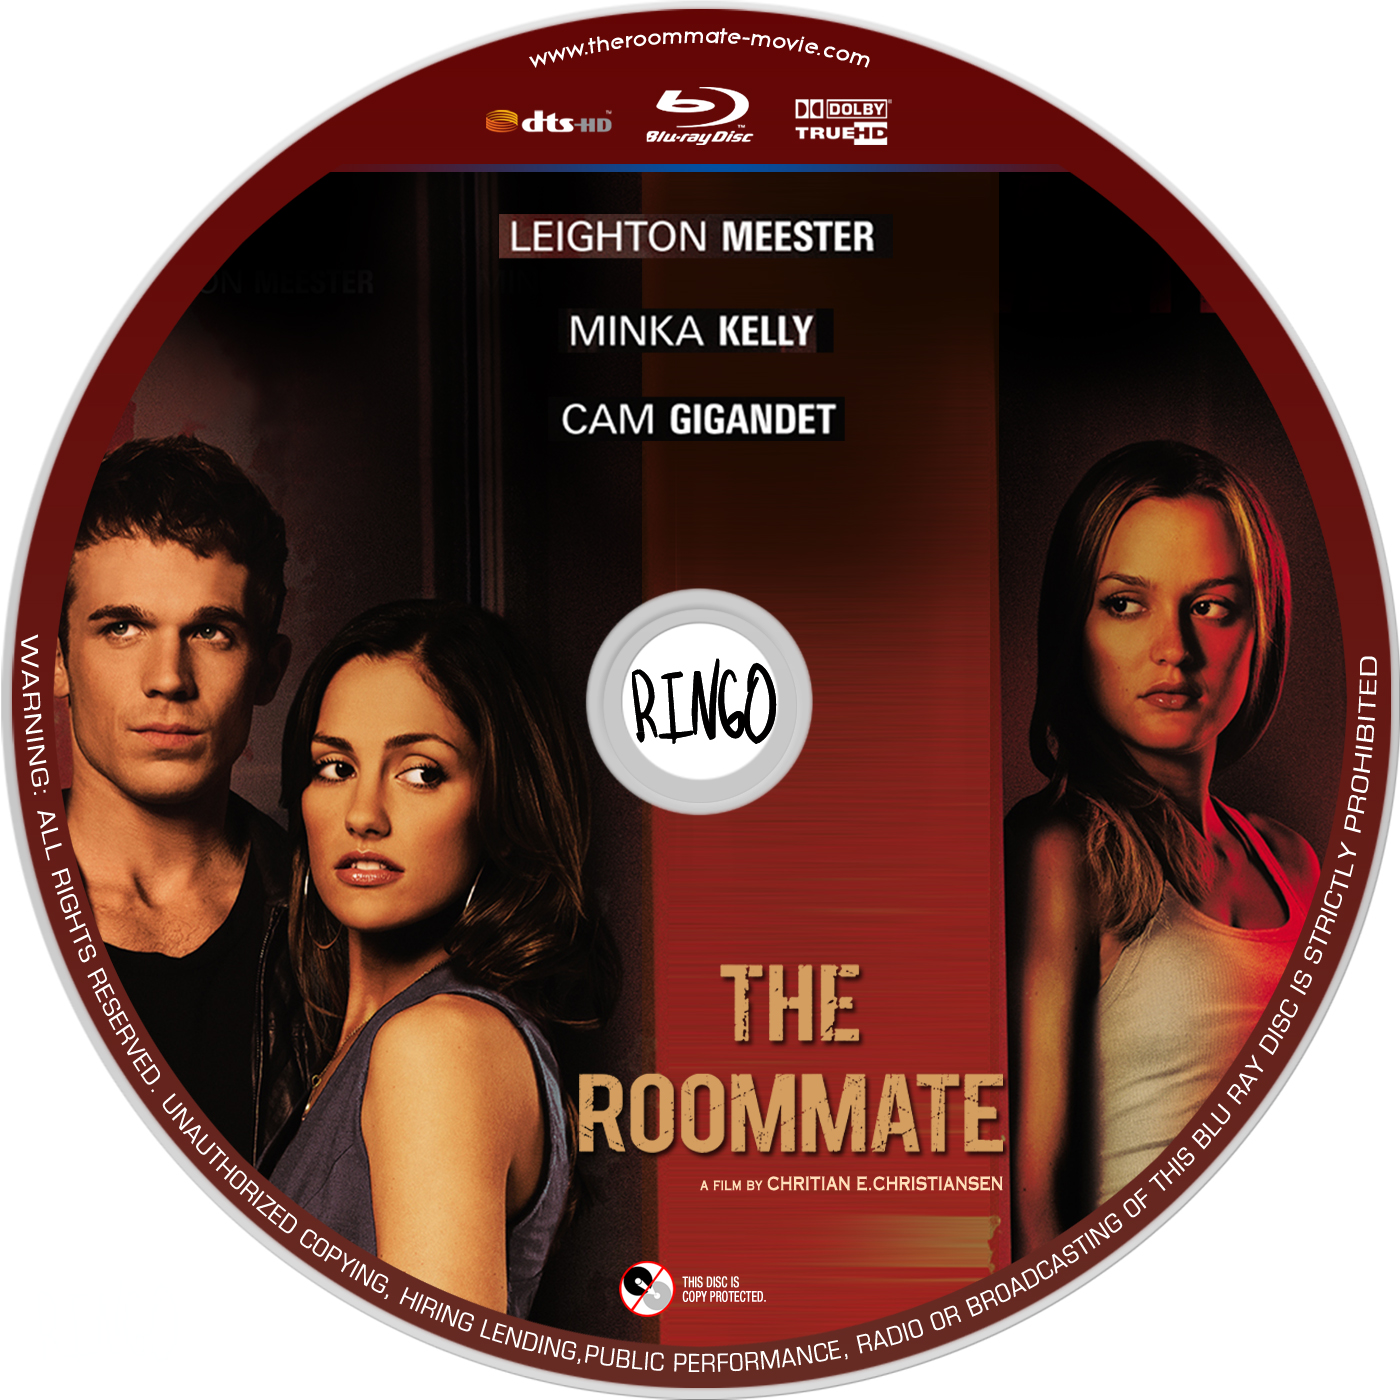 the roommate 2011 full movie download